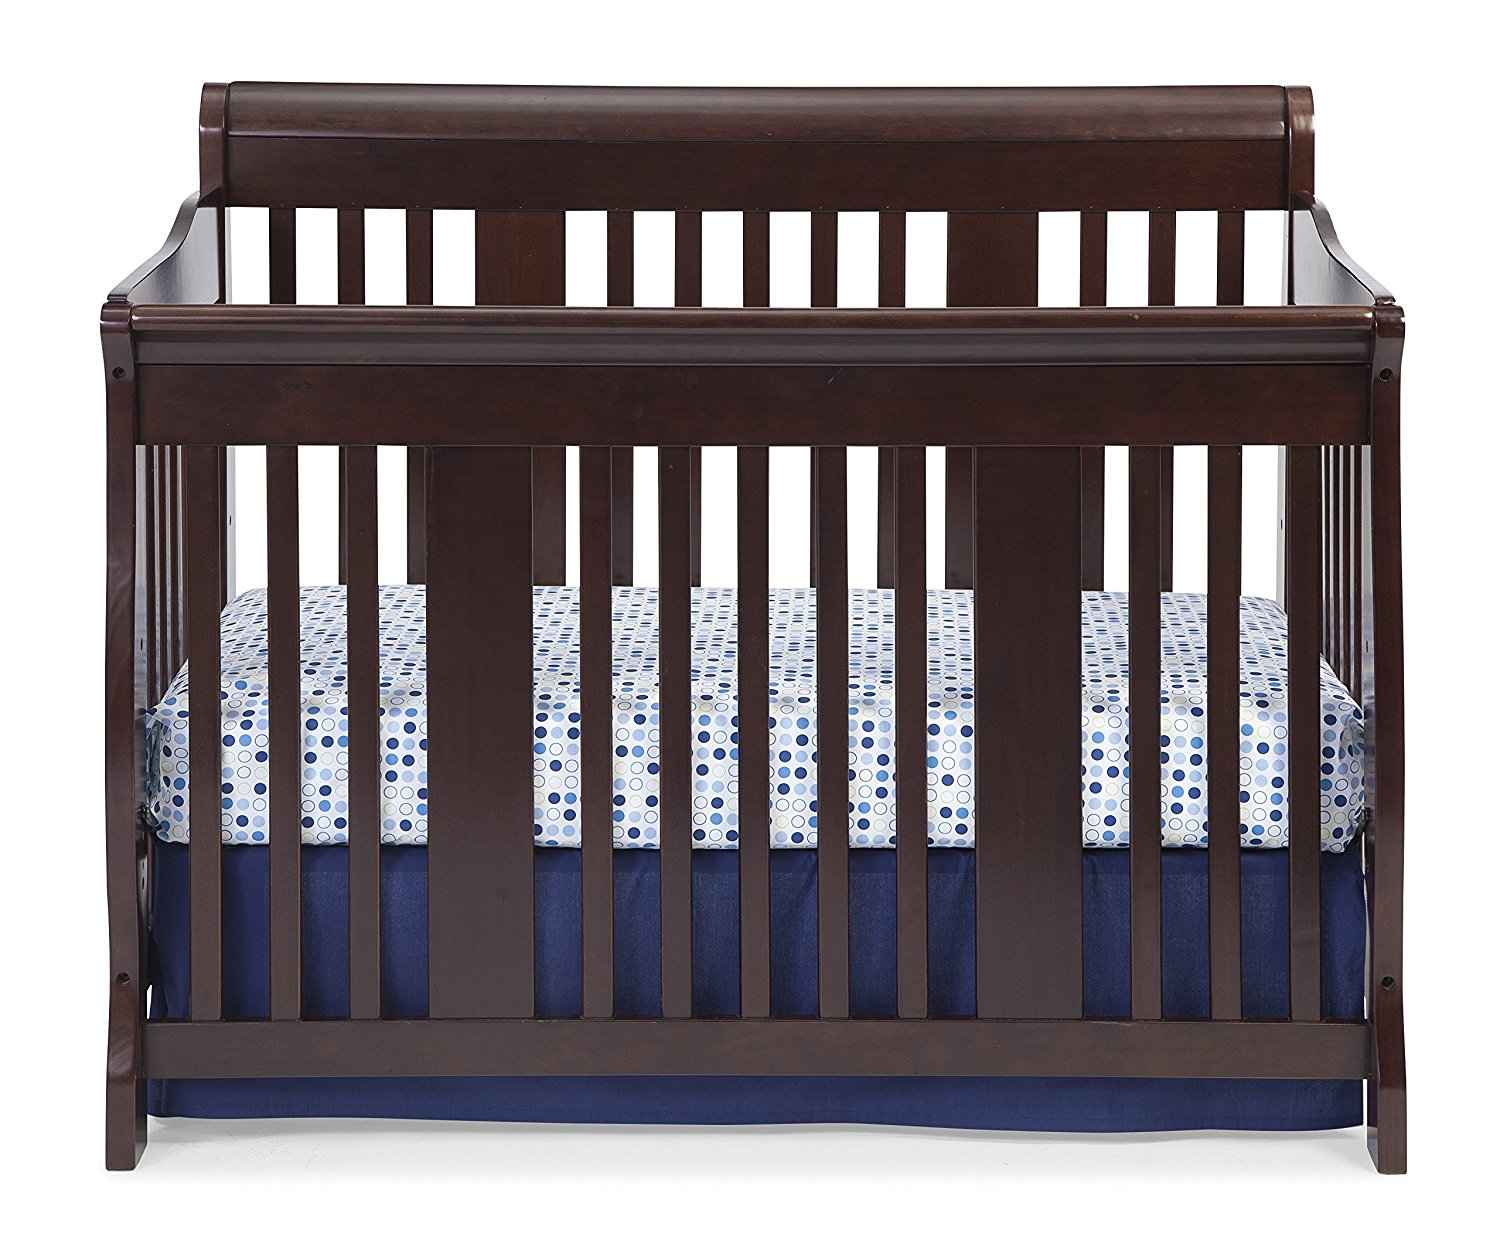 Davinci Cribs Recall | Mini Crib Walmart | Bassett Baby Crib  sc 1 st  On Deck With Lucy & Furniture: Bassett Baby Crib With Sophisticated And Graceful ...